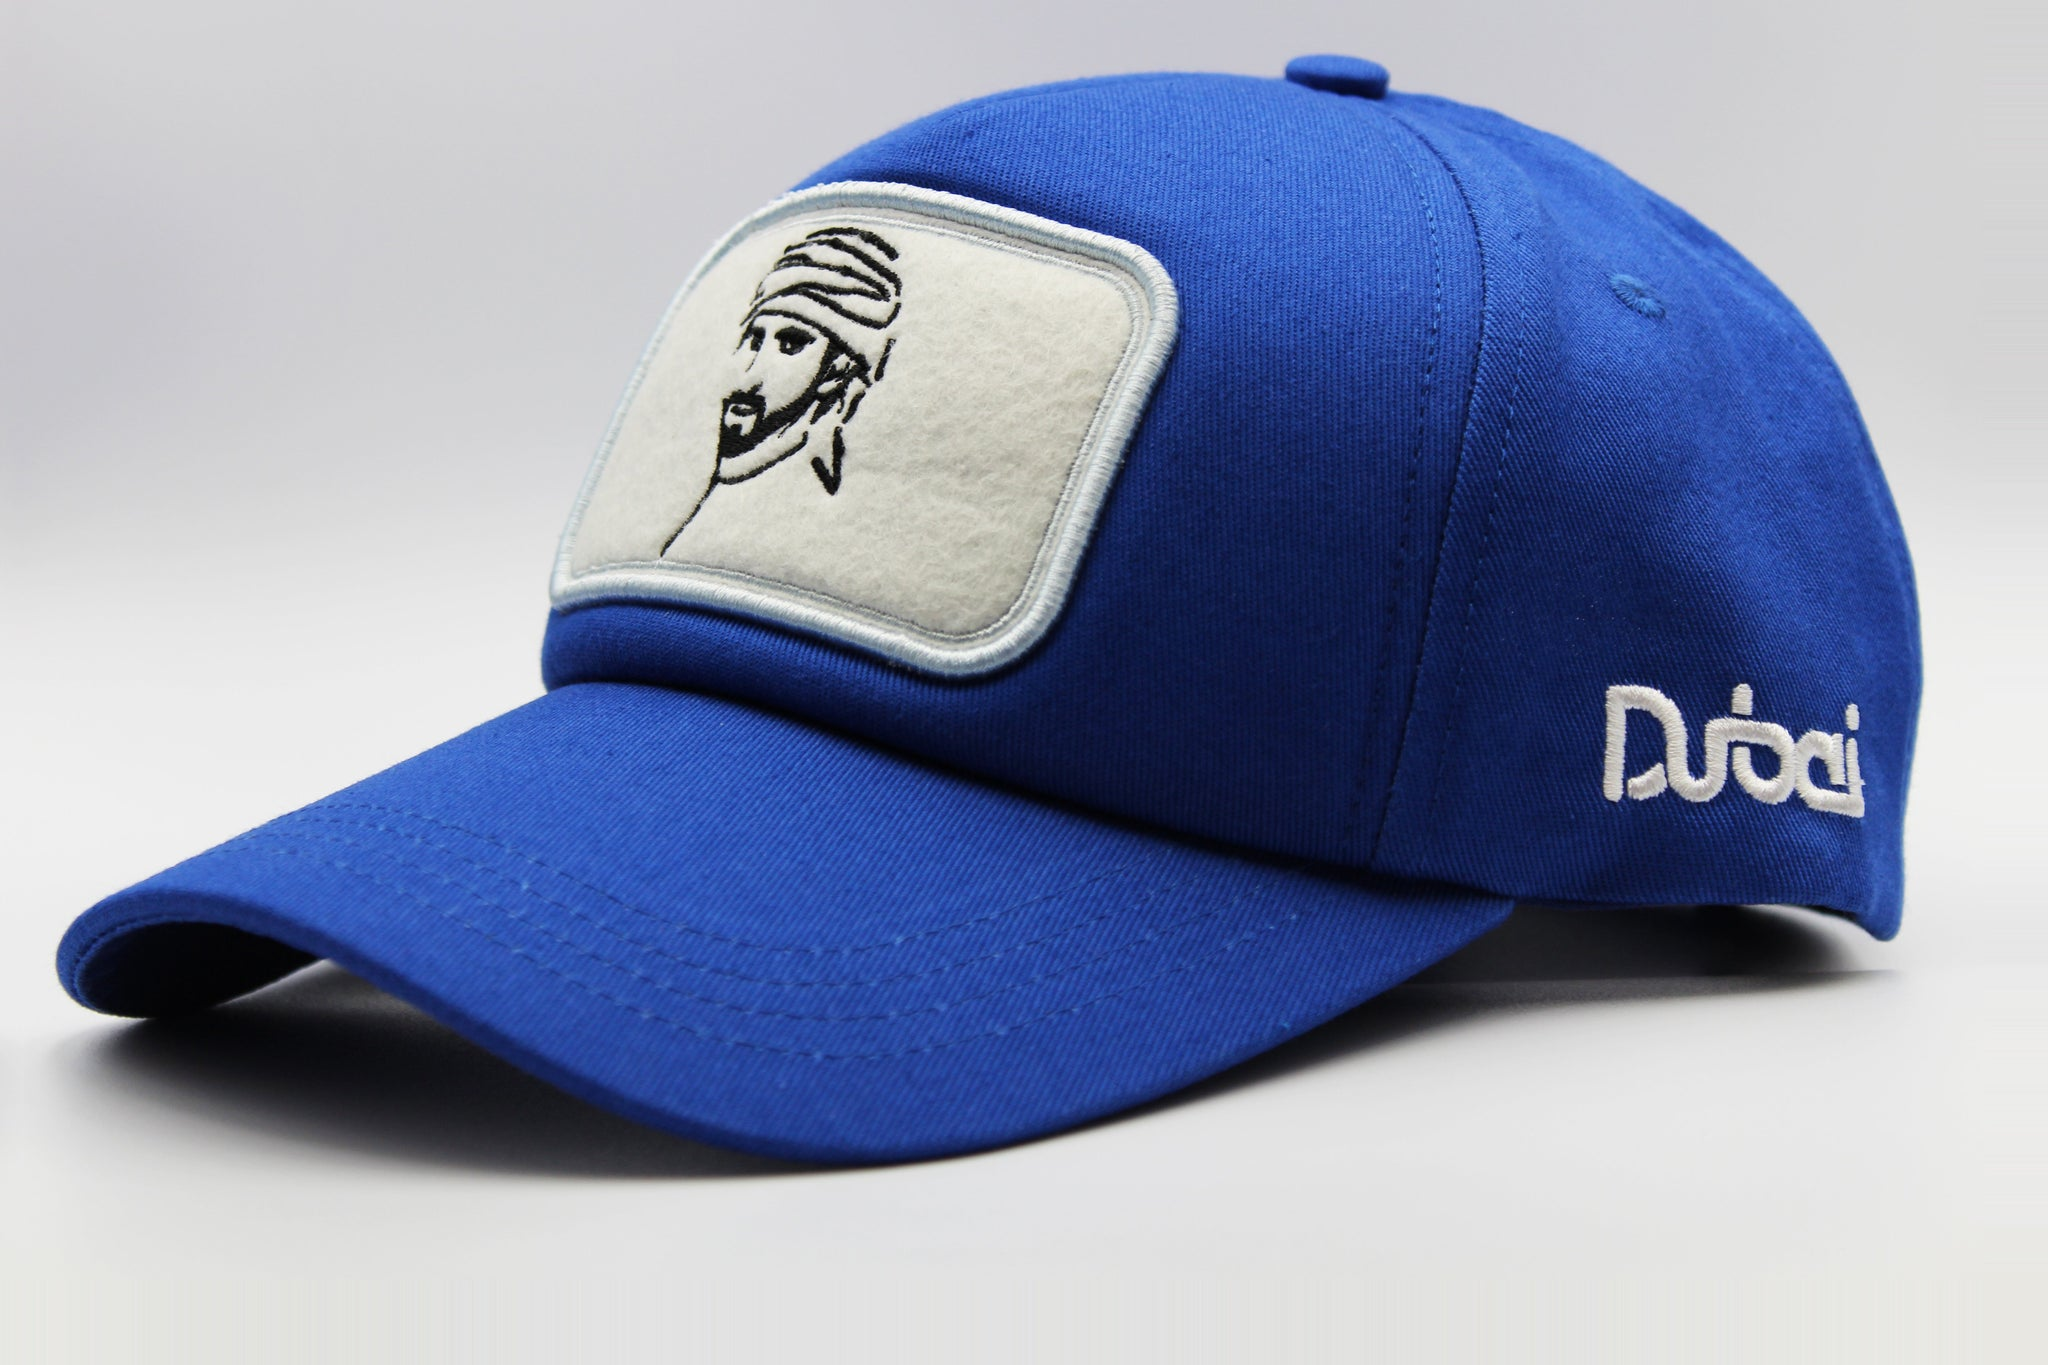 fazza cap blue by Foxerz sidelong view